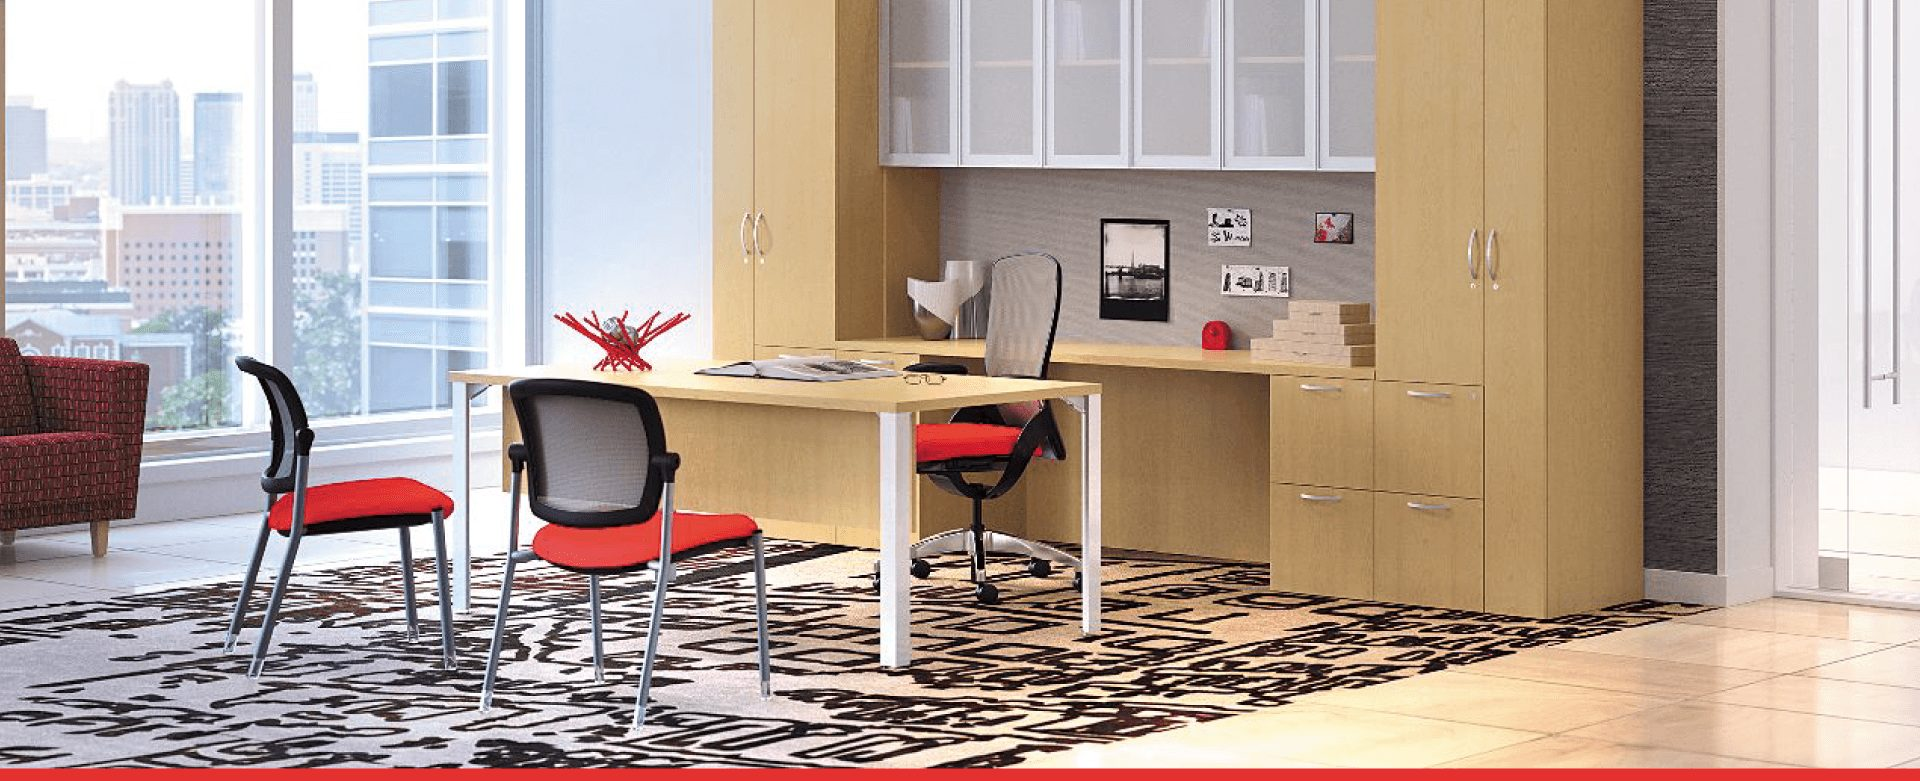 commercial office furniture in office